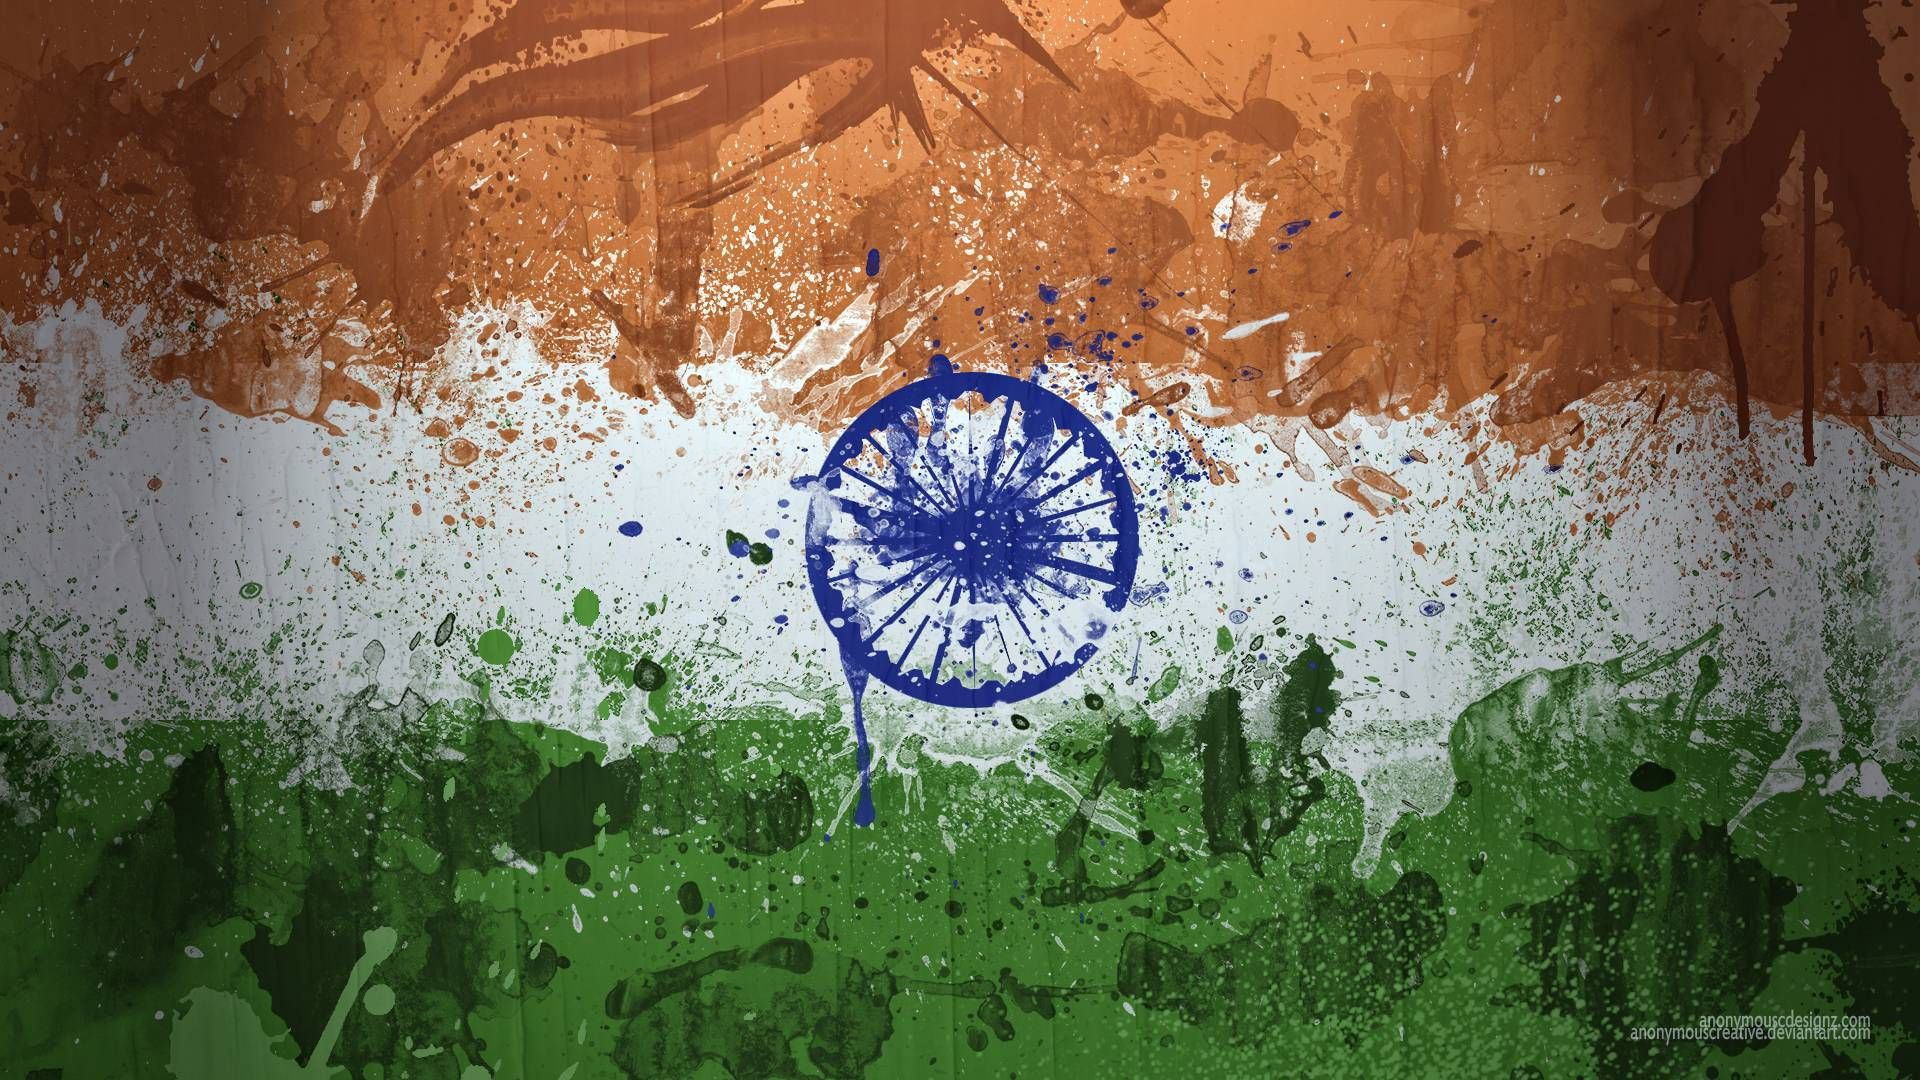 Hd wallpaper indian - Indian Flag Hd Images For Whatsapp Dp Profile Wallpapers For Fb